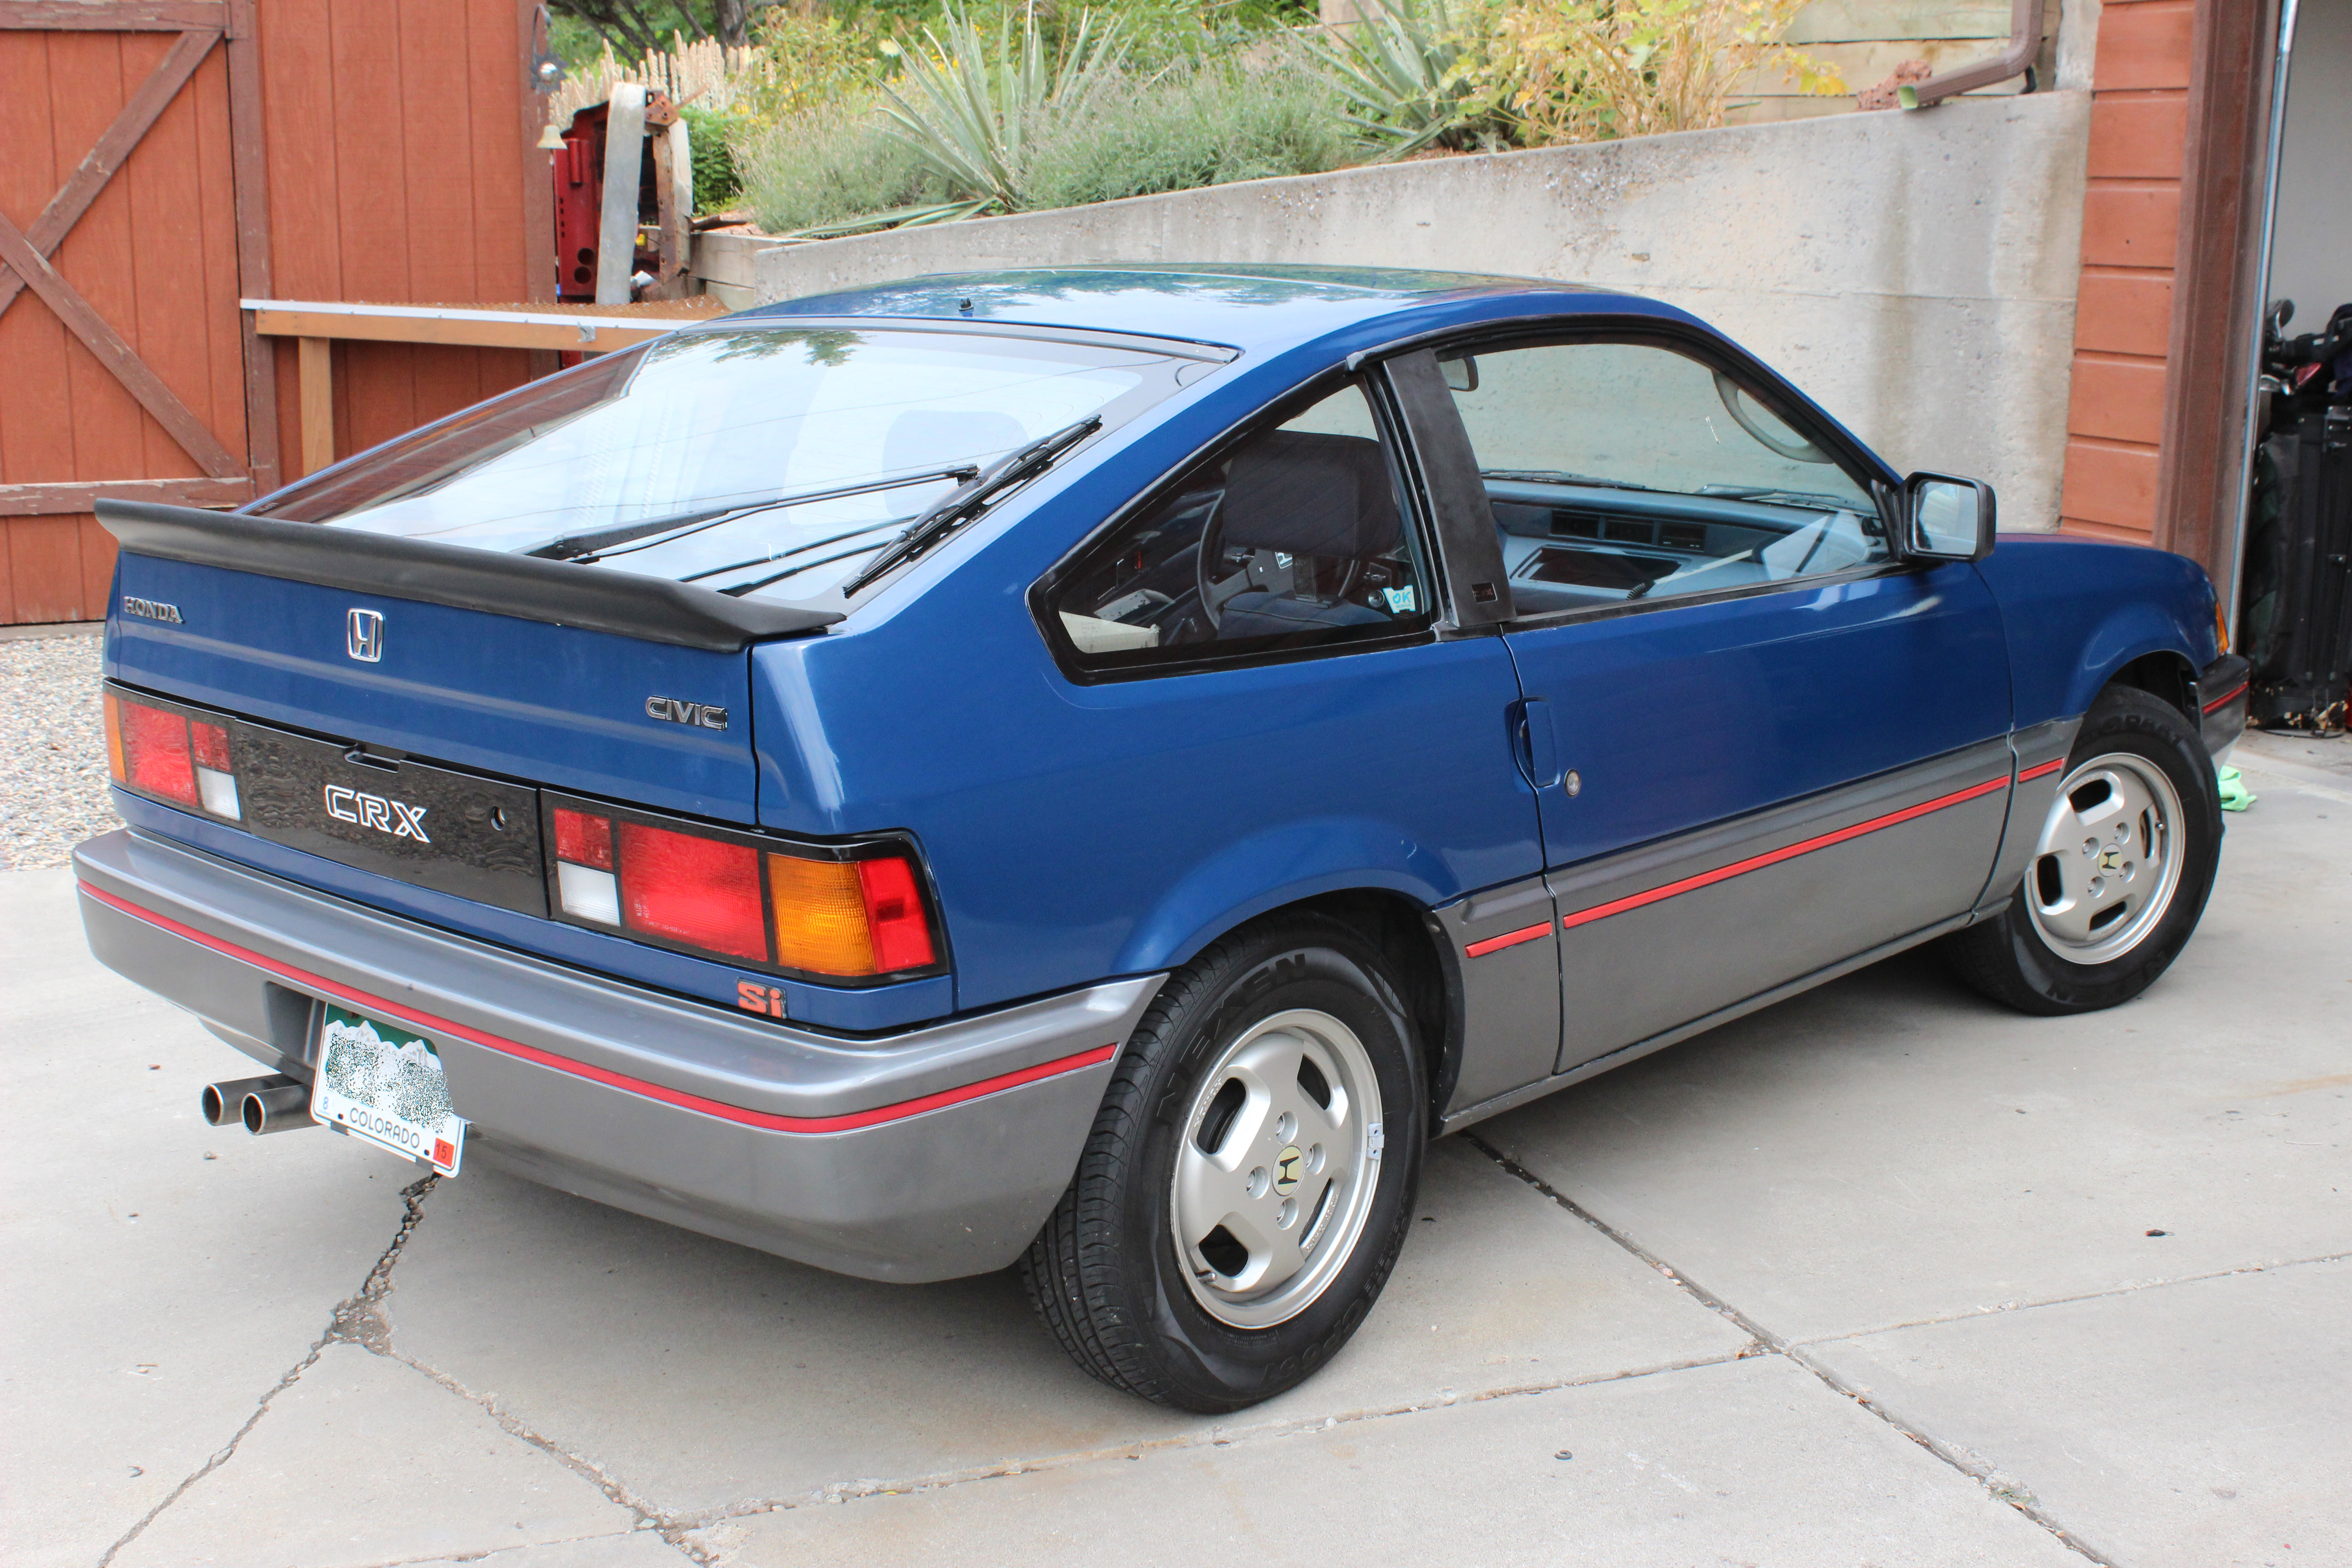 life with a 1985 crx si builds and project cars forum. Black Bedroom Furniture Sets. Home Design Ideas